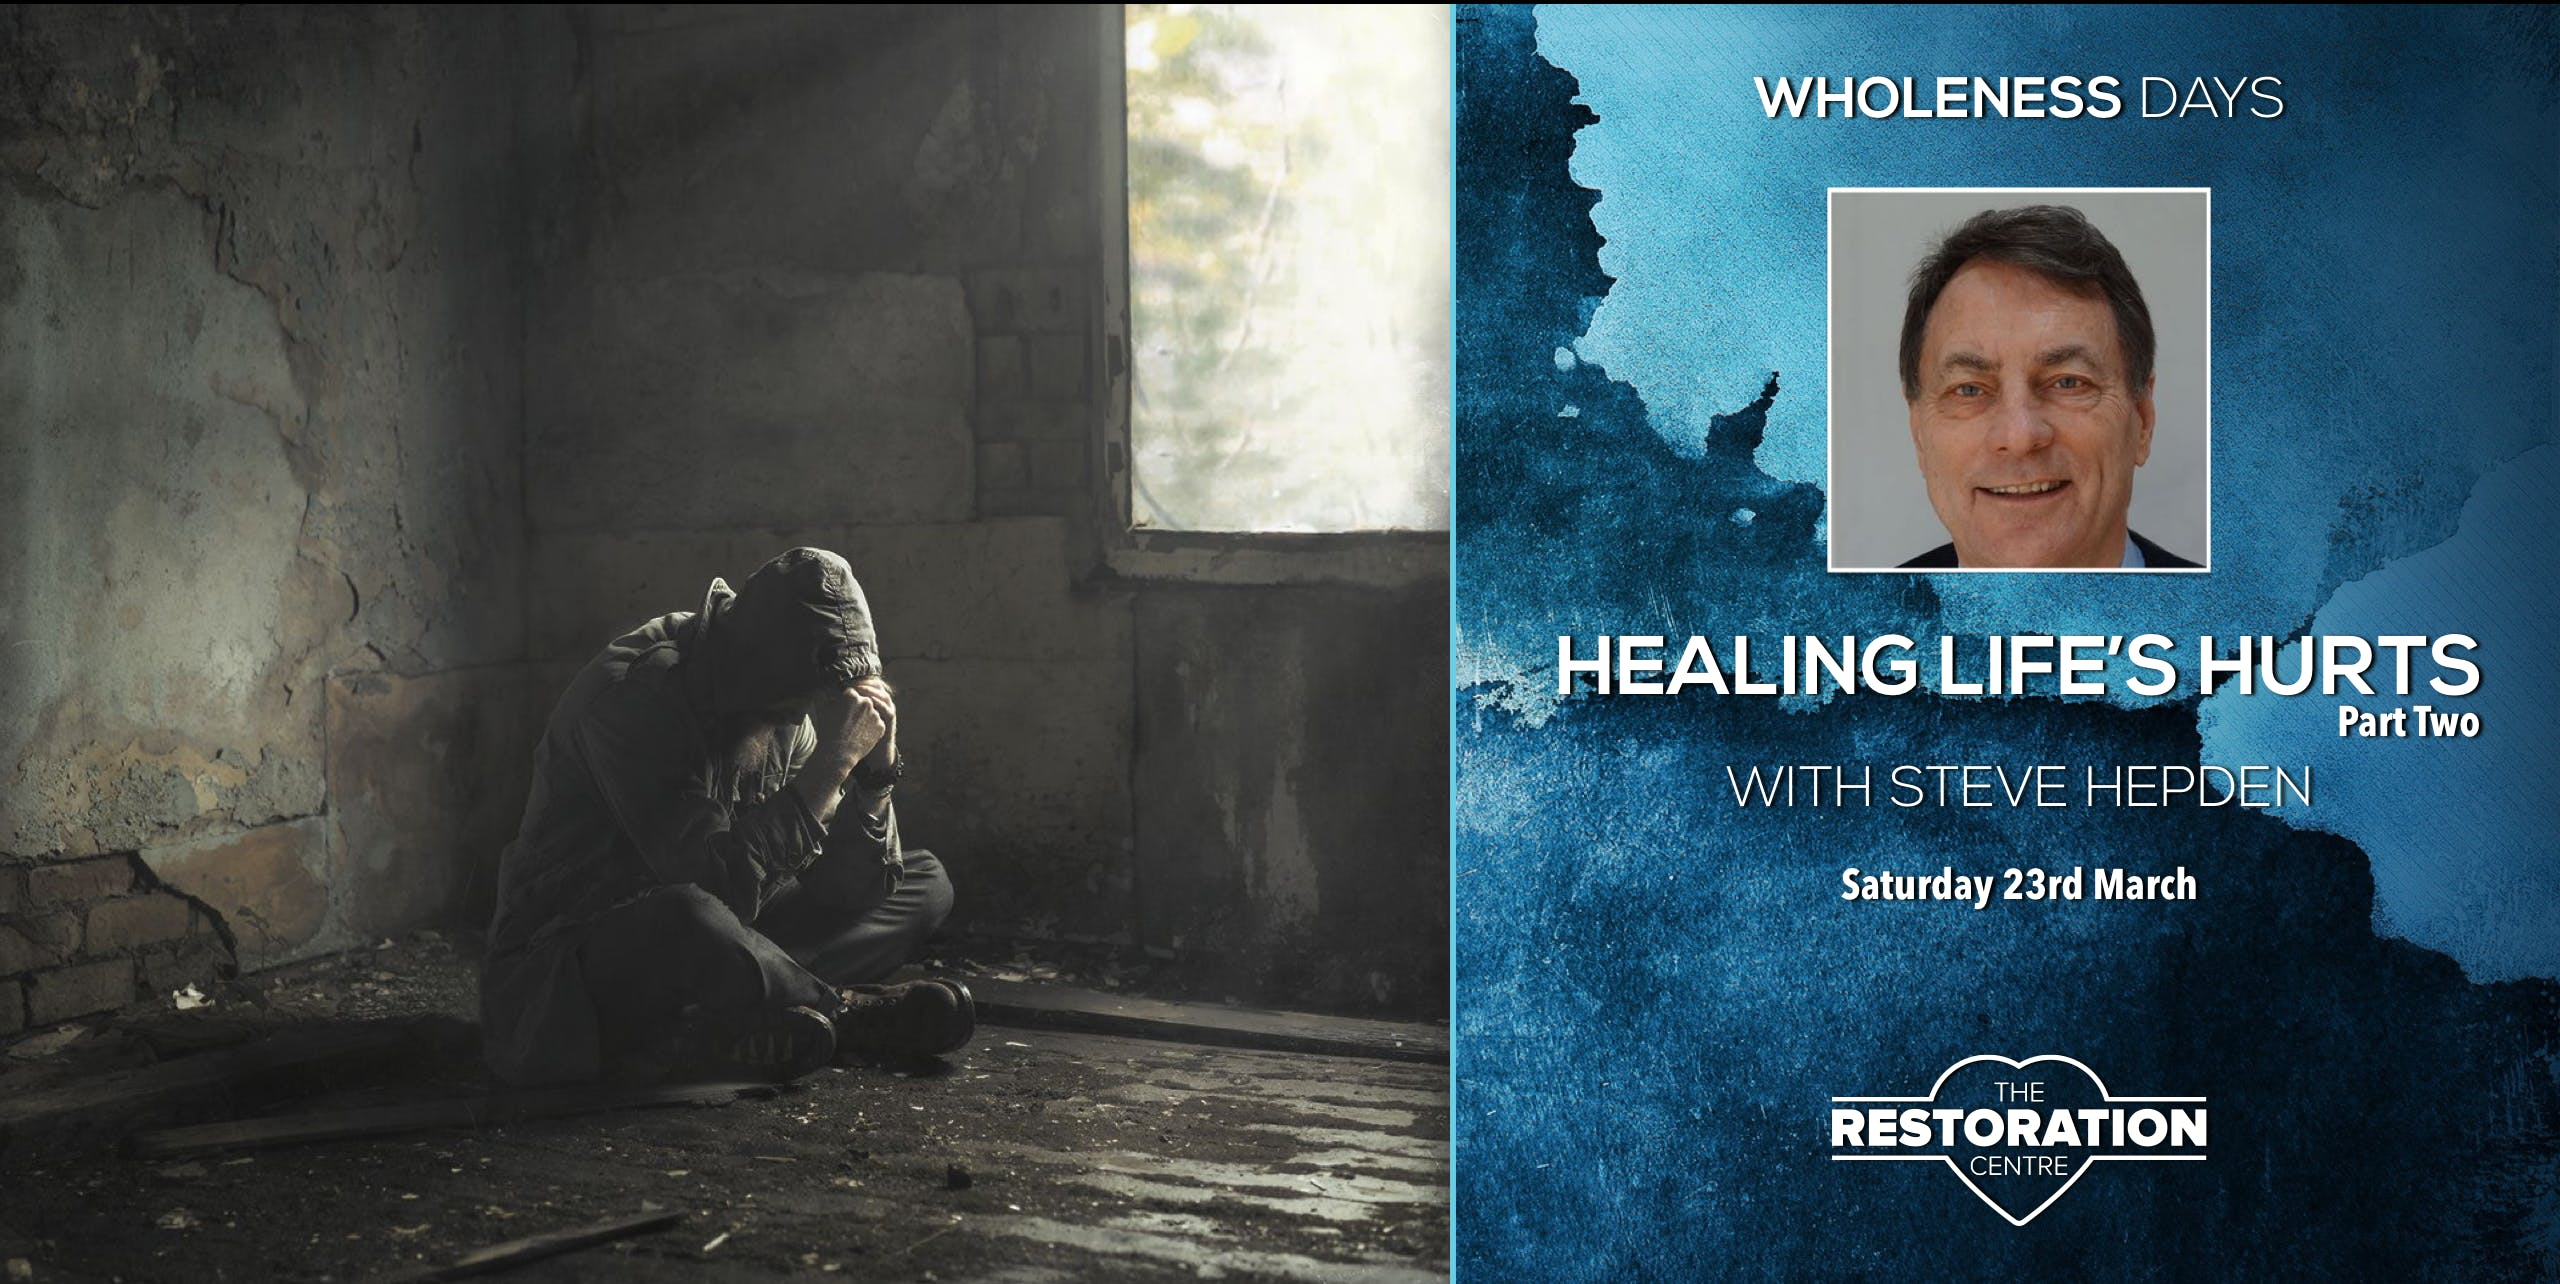 Healing Life's Hurts: Part Two with Steve Hepden